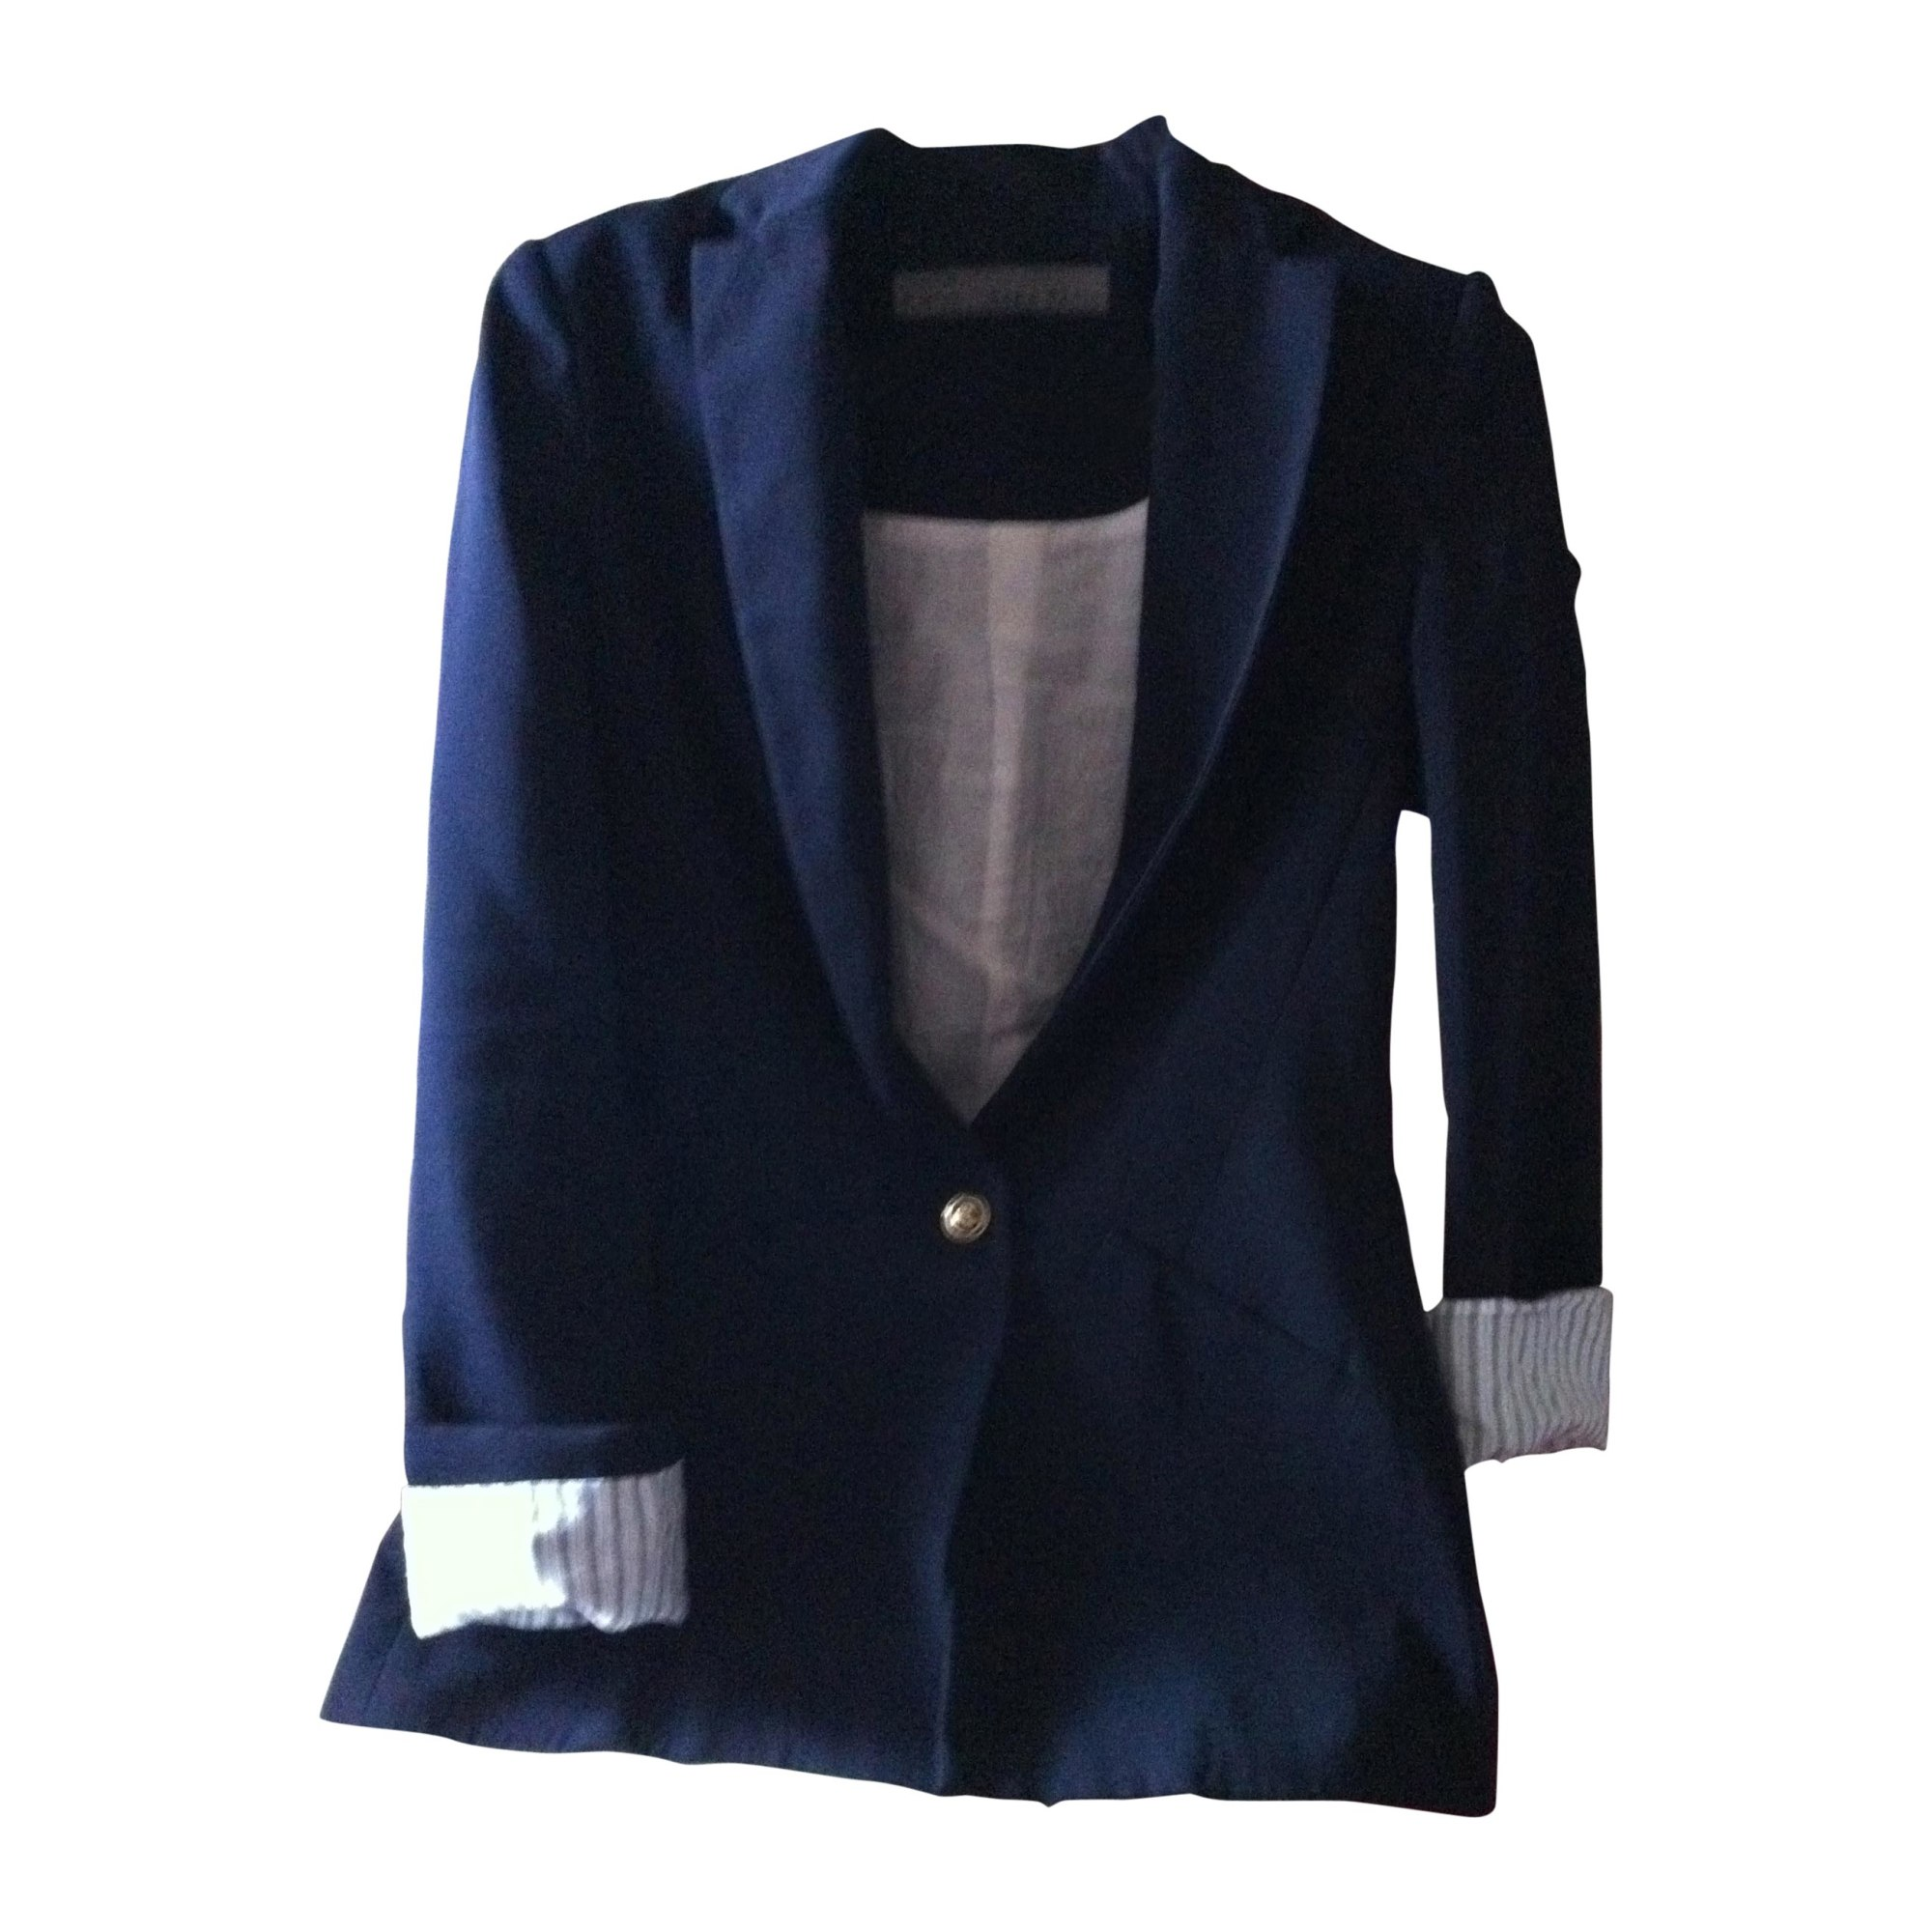 blazer veste tailleur zara 34 xs t0 bleu 410002. Black Bedroom Furniture Sets. Home Design Ideas